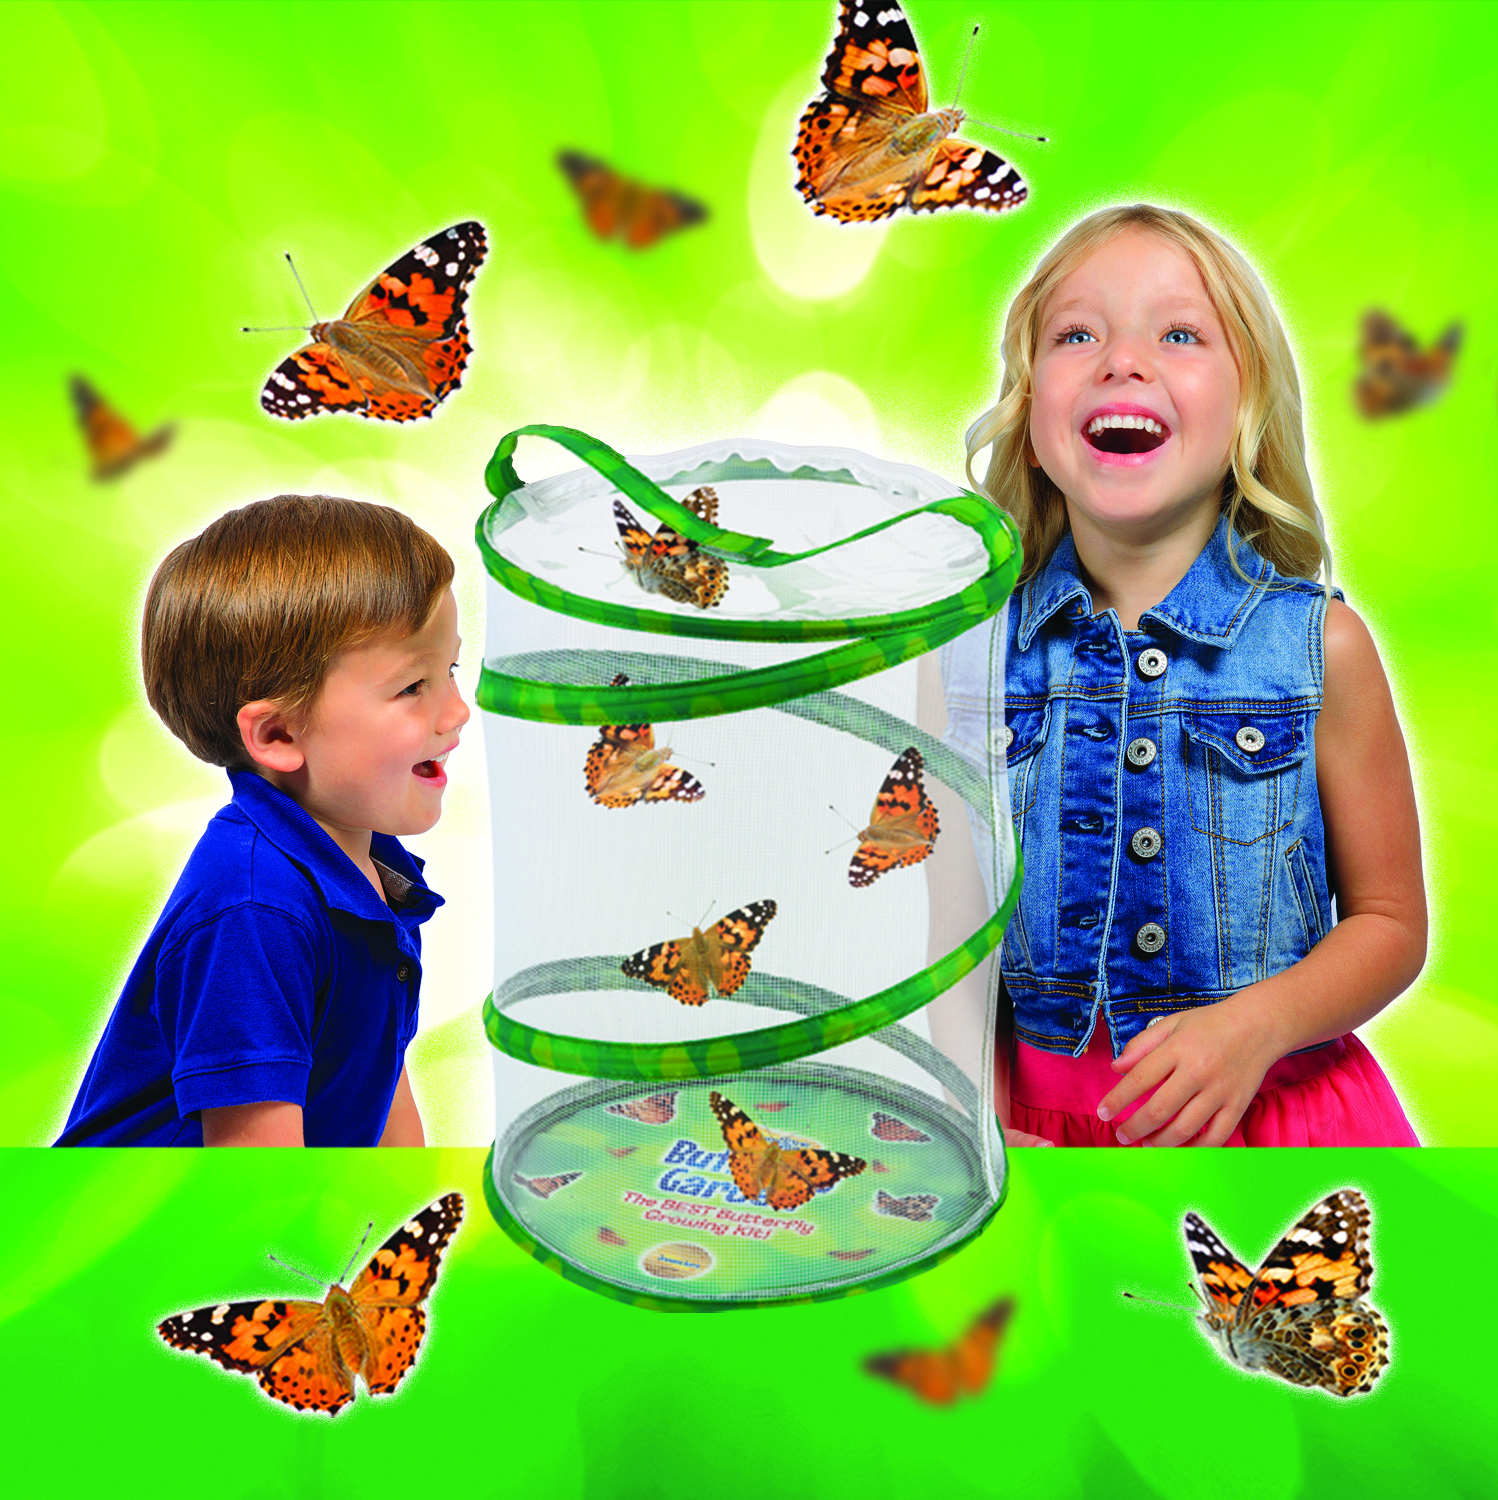 Watch Caterpillars Transform Into Butterflies With This